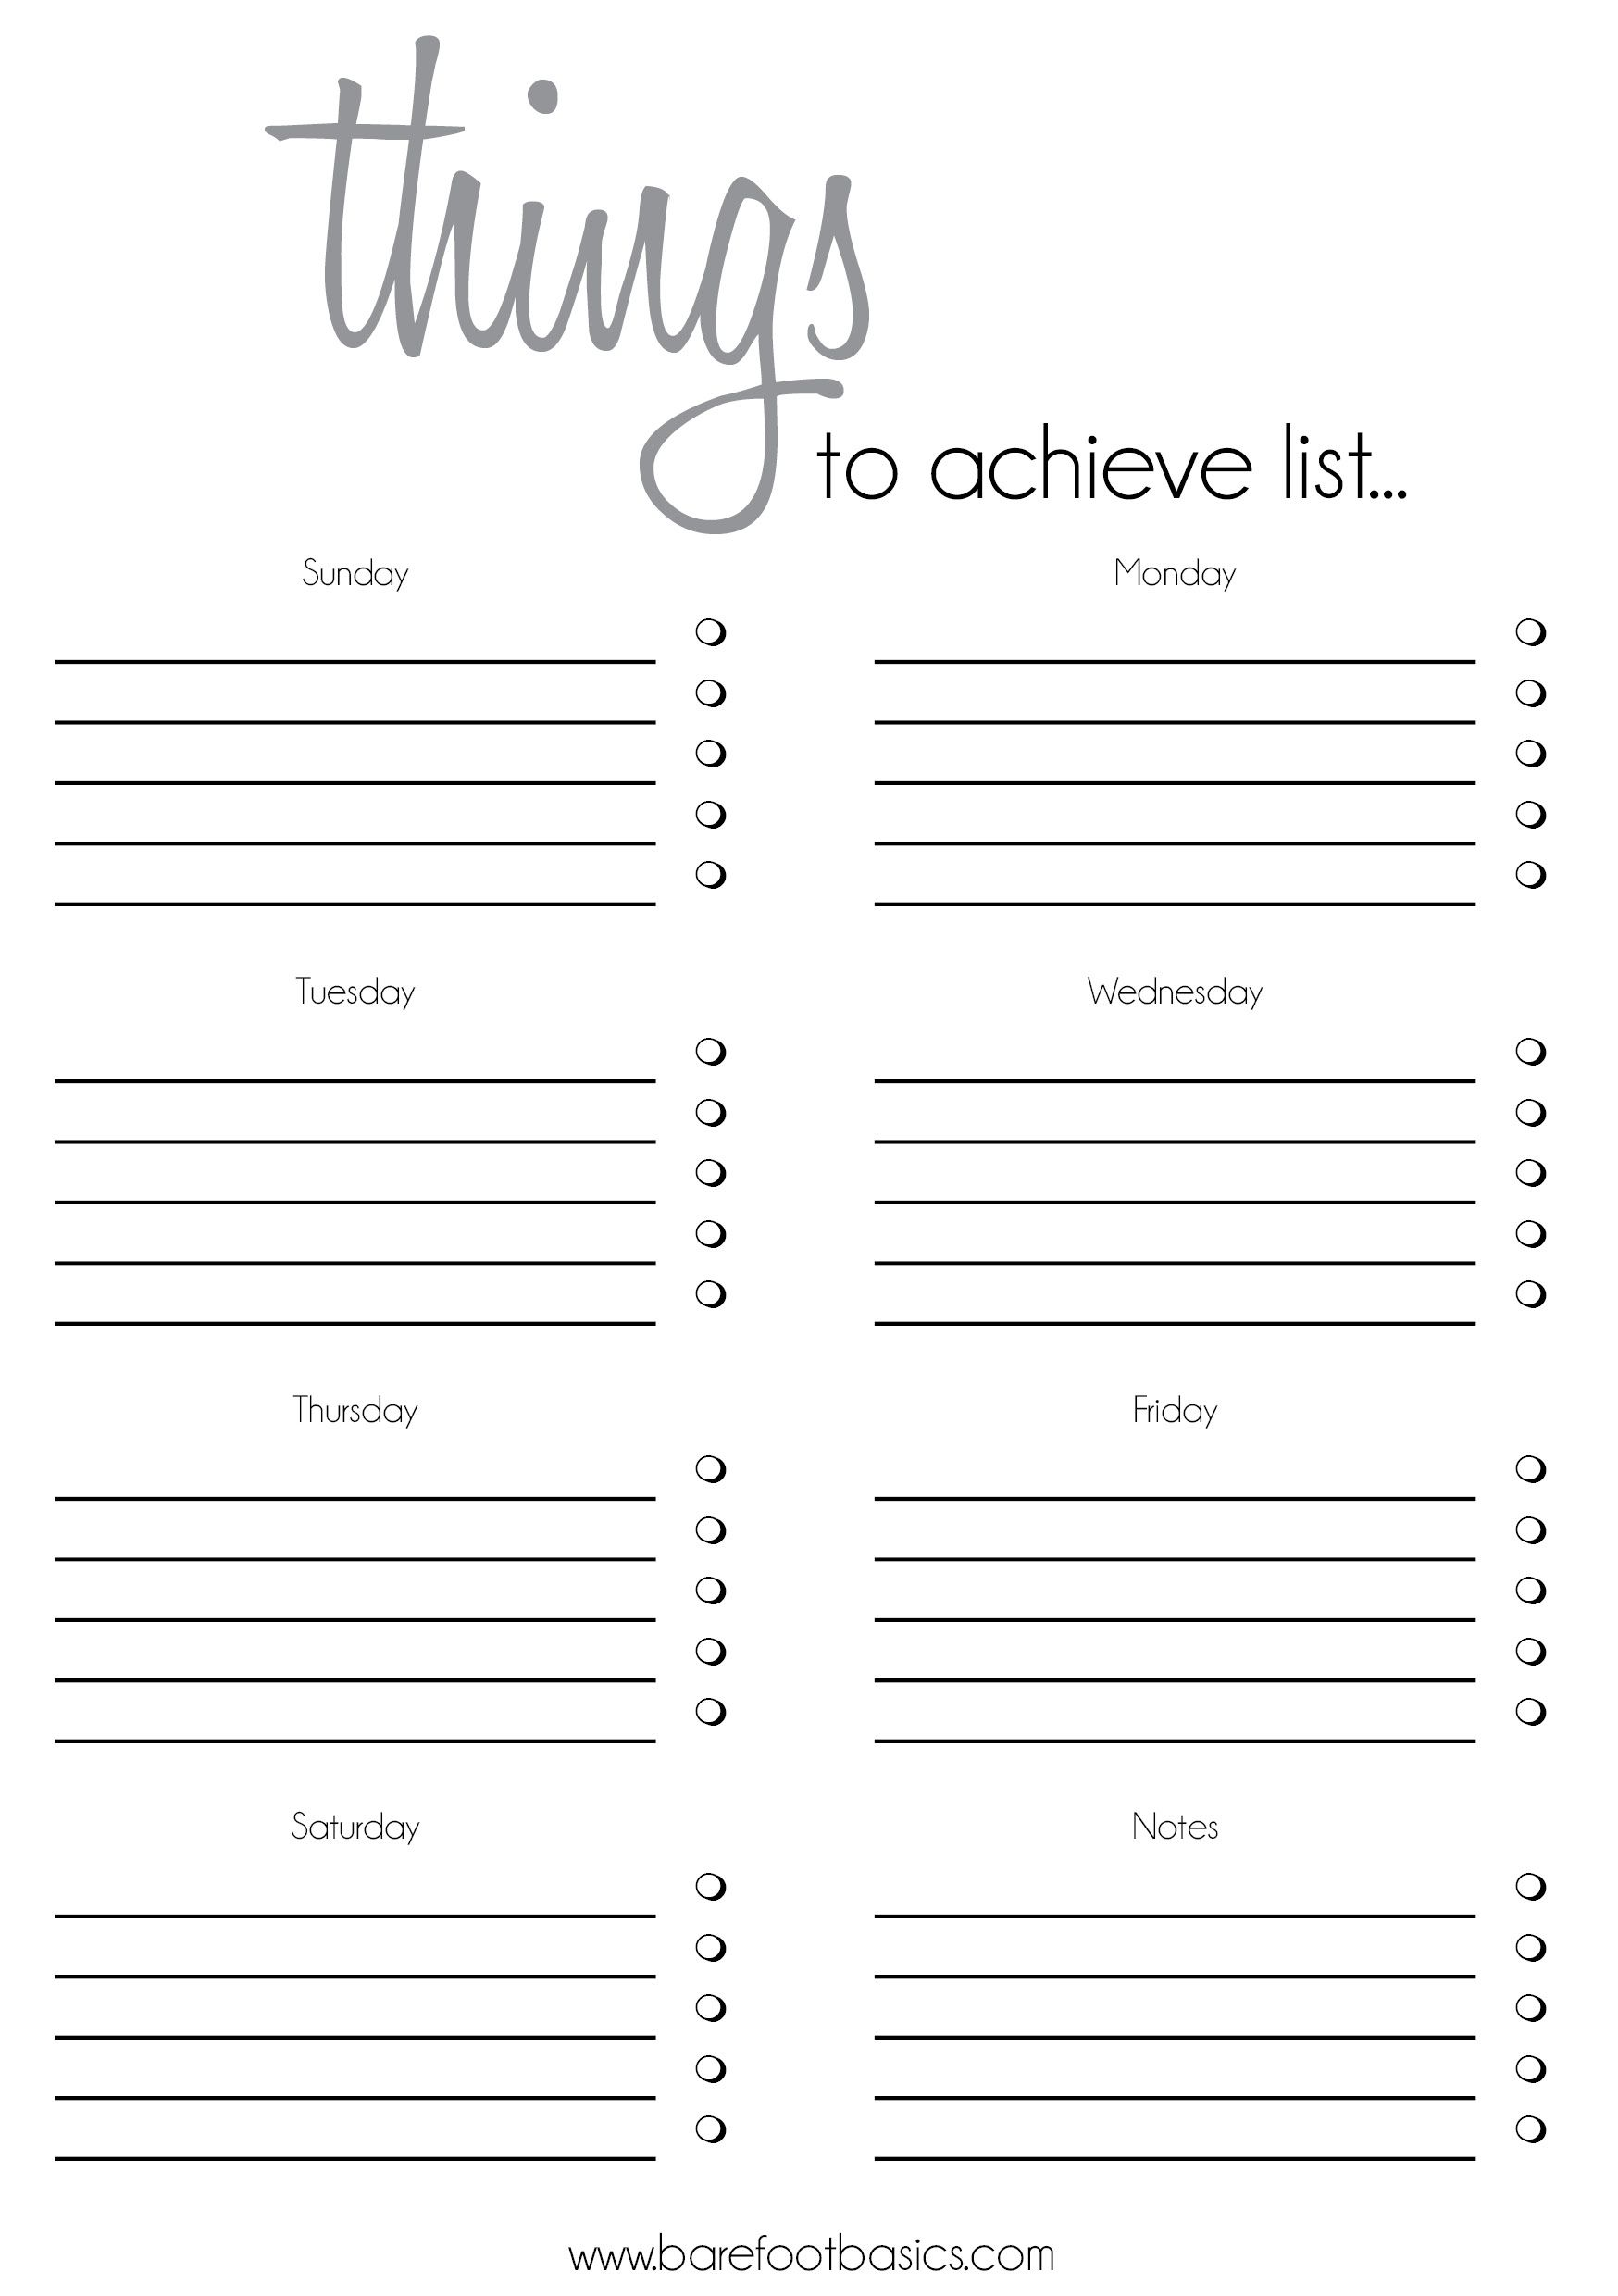 Checklists Free Printable To Do List Pdf